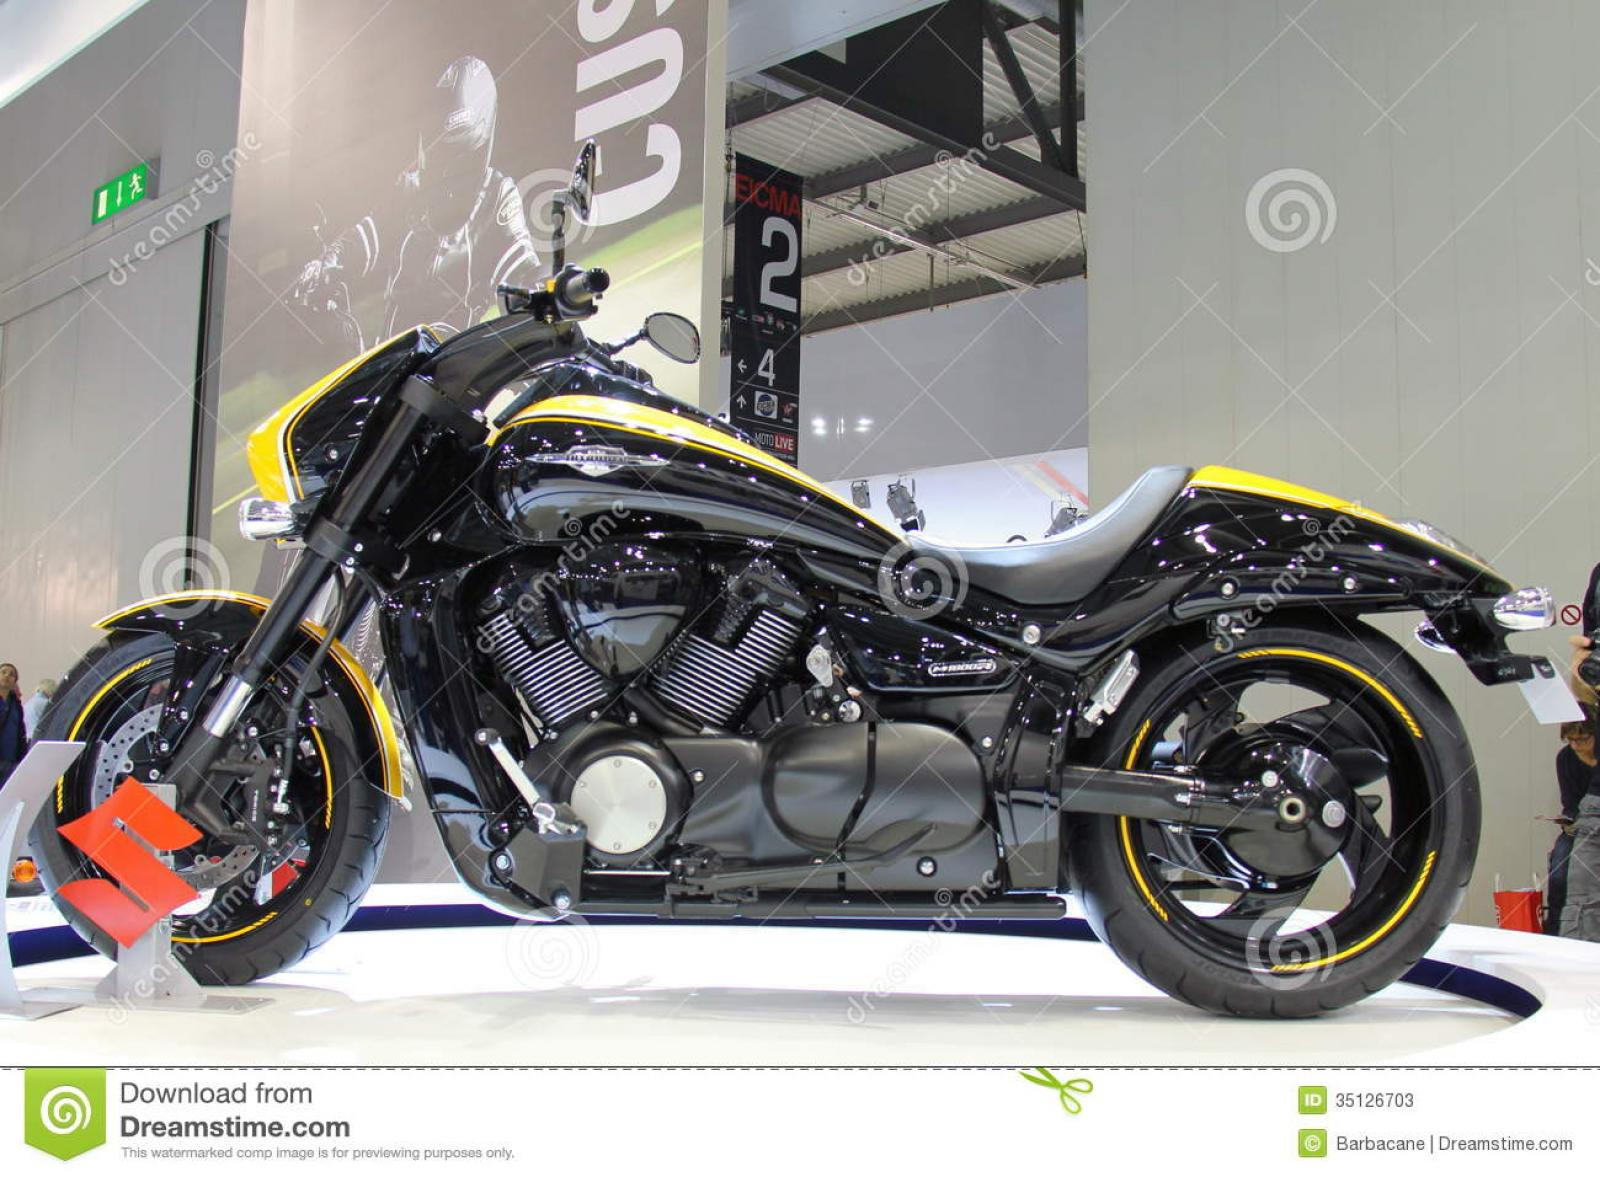 2014 suzuki intruder m1800rb moto zombdrive com. Black Bedroom Furniture Sets. Home Design Ideas